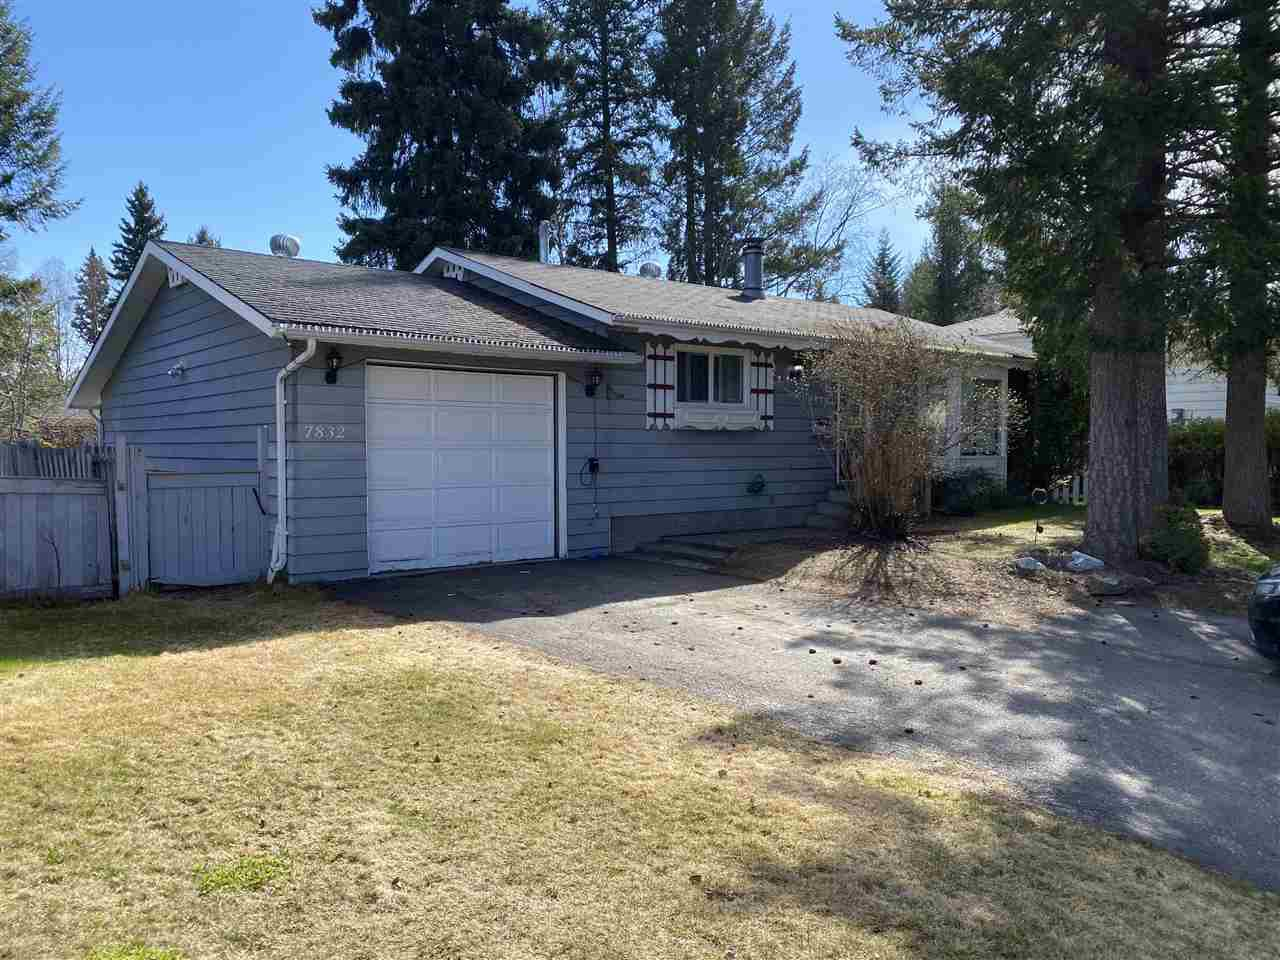 Main Photo: 7832 LATROBE Place in Prince George: Lower College House for sale (PG City South (Zone 74))  : MLS®# R2453379